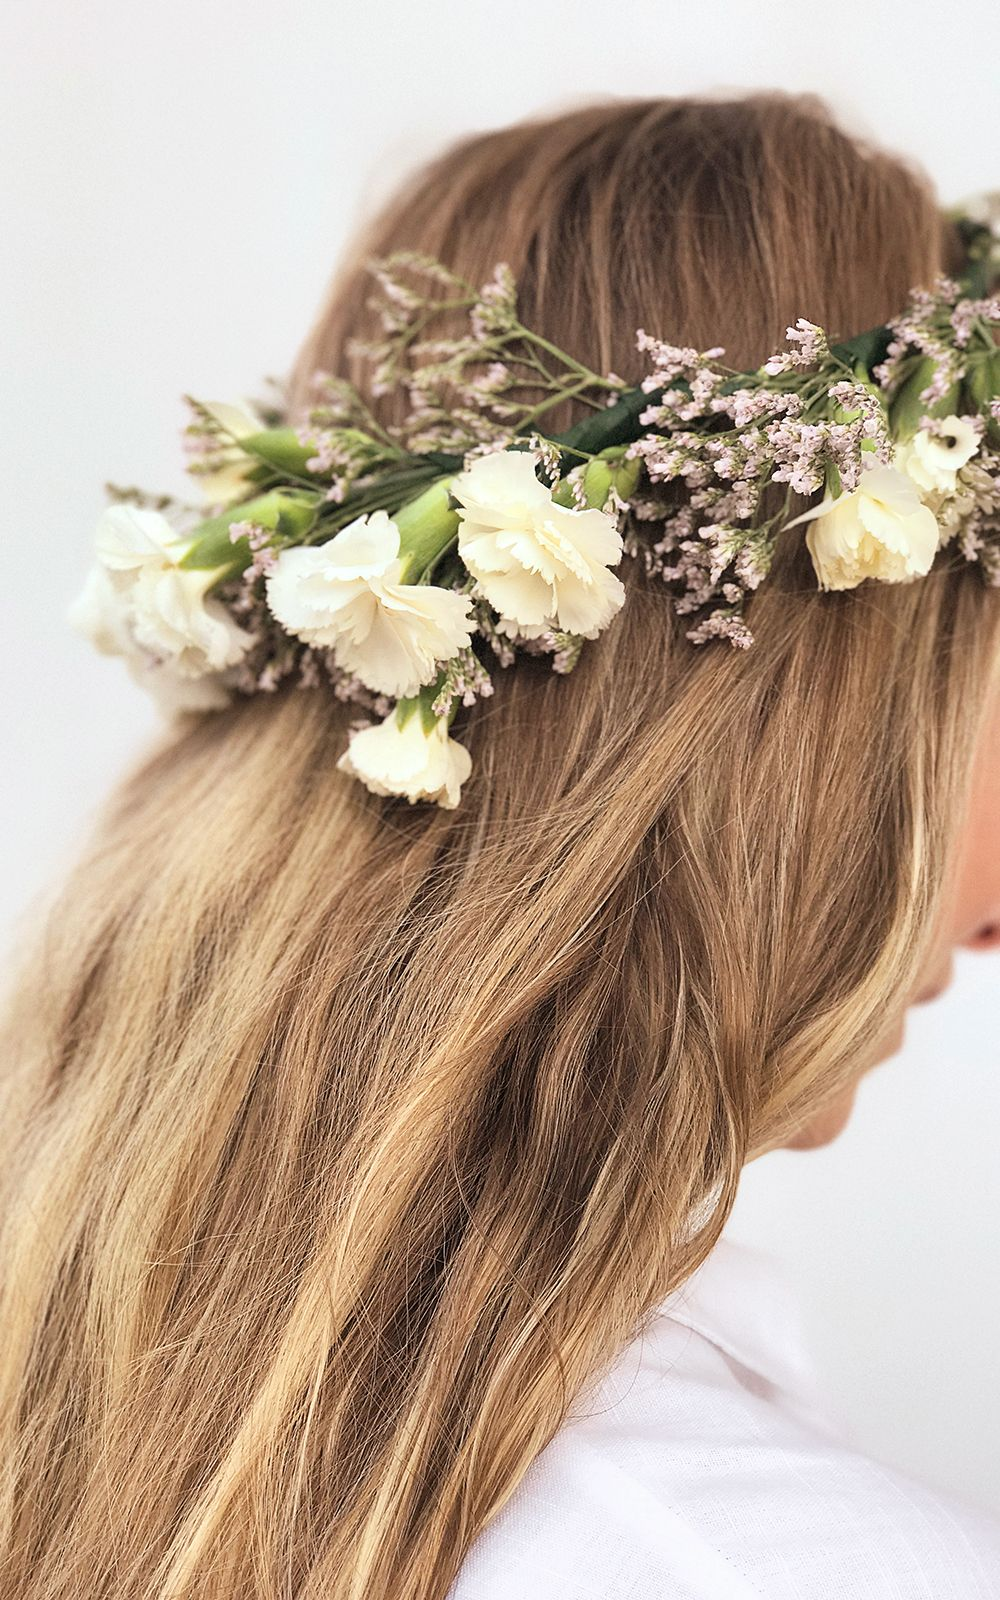 How to make swedish flower crowns flower crowns crown and flower we love this flower crown how to use it to celebrate swedish mid summer for your wedding or just for fun izmirmasajfo